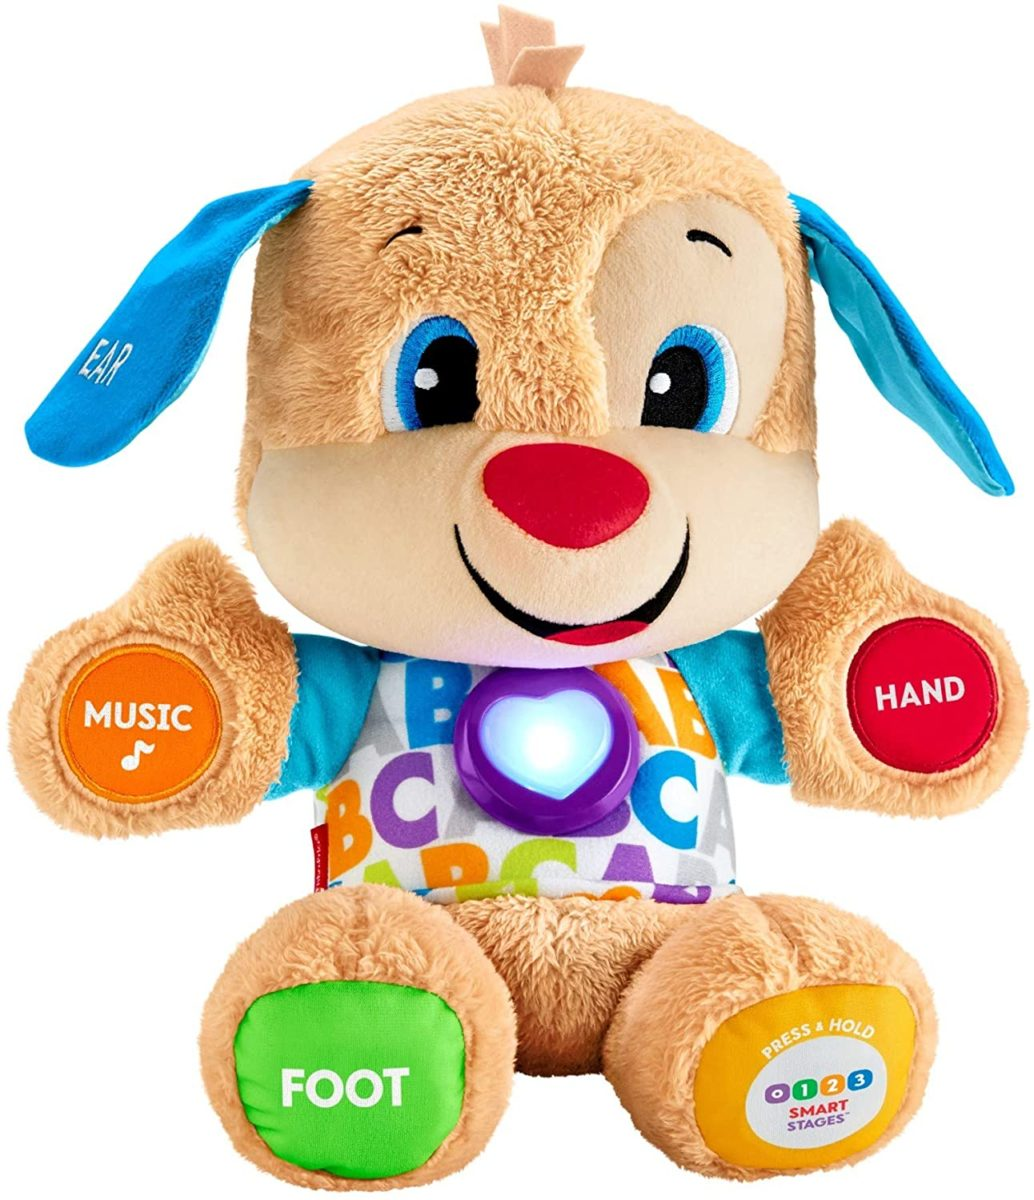 top quality fisher-price toys that come highly-rated, educational, and entertaining that you can buy for your little ones right now on amazon